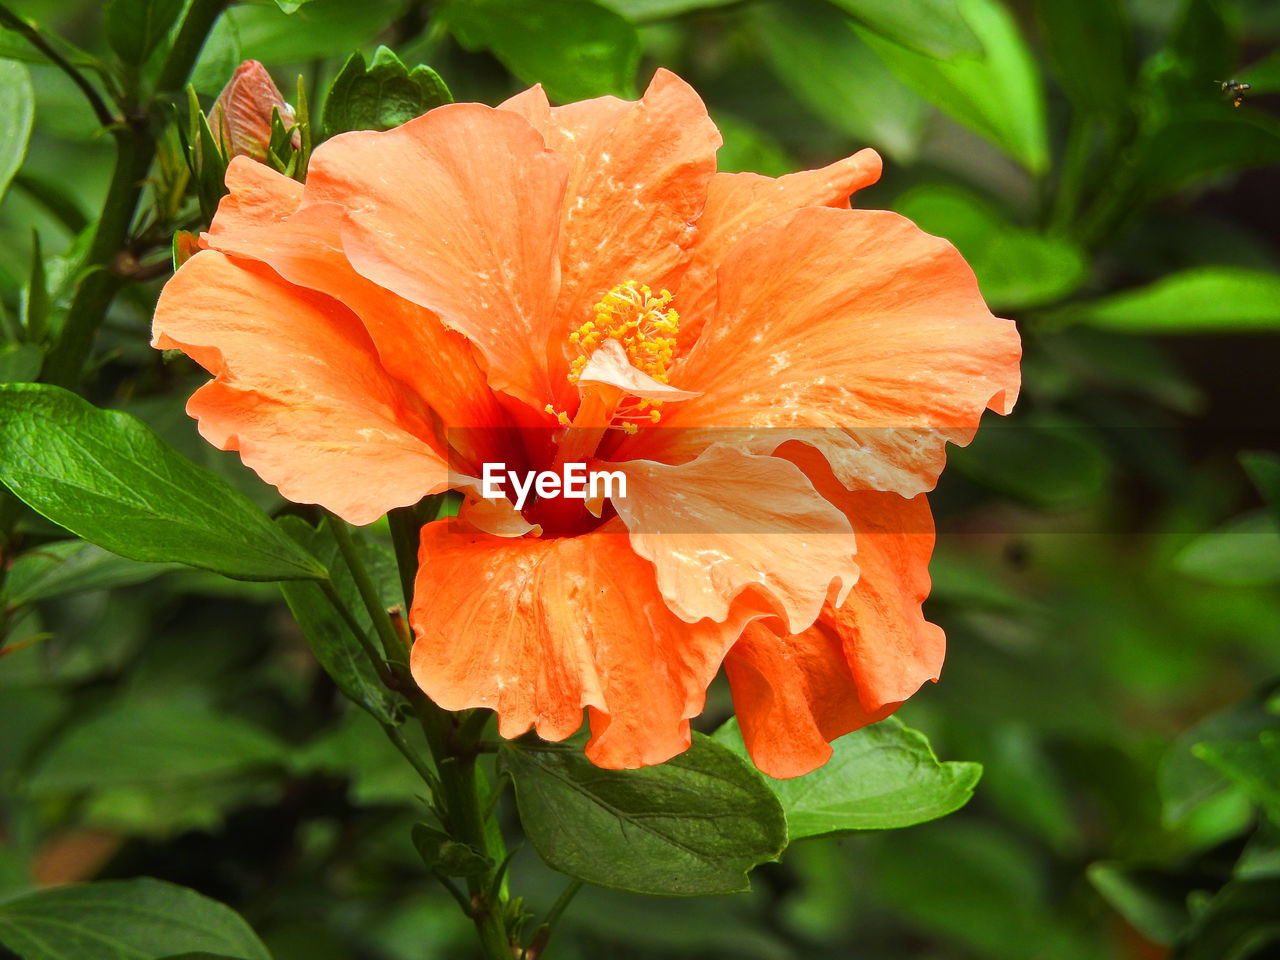 flower, petal, growth, nature, plant, flower head, beauty in nature, fragility, freshness, orange color, leaf, blooming, outdoors, no people, day, close-up, hibiscus